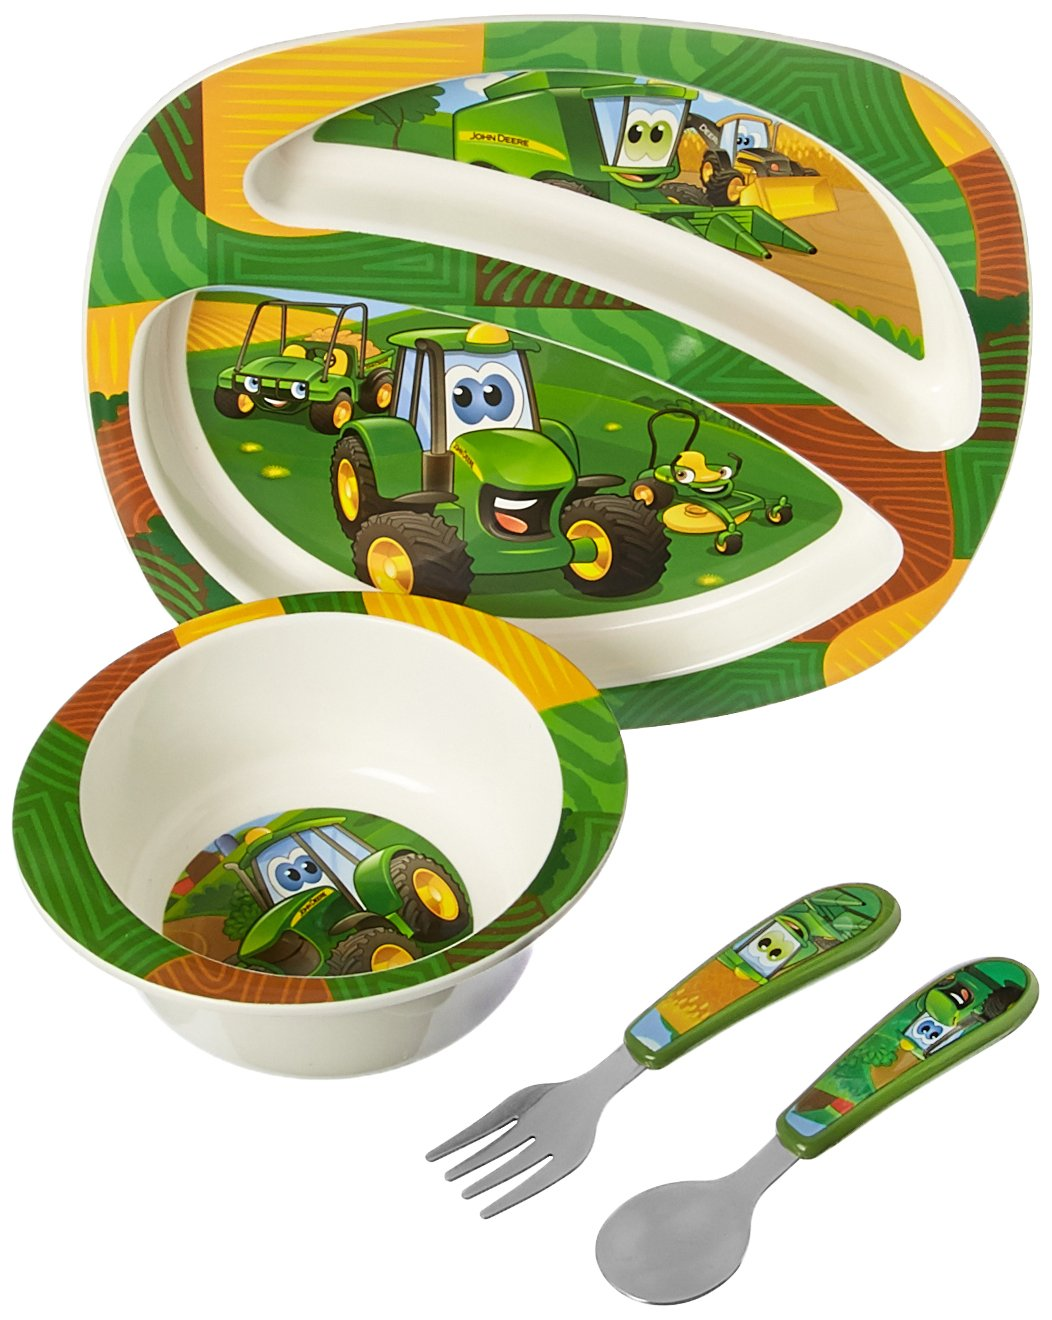 John Deere's Johnny Tractor and Friends Feeding 4 Piece Set, Green, Brown, Yellow, Blue, White, Red by John Deere's